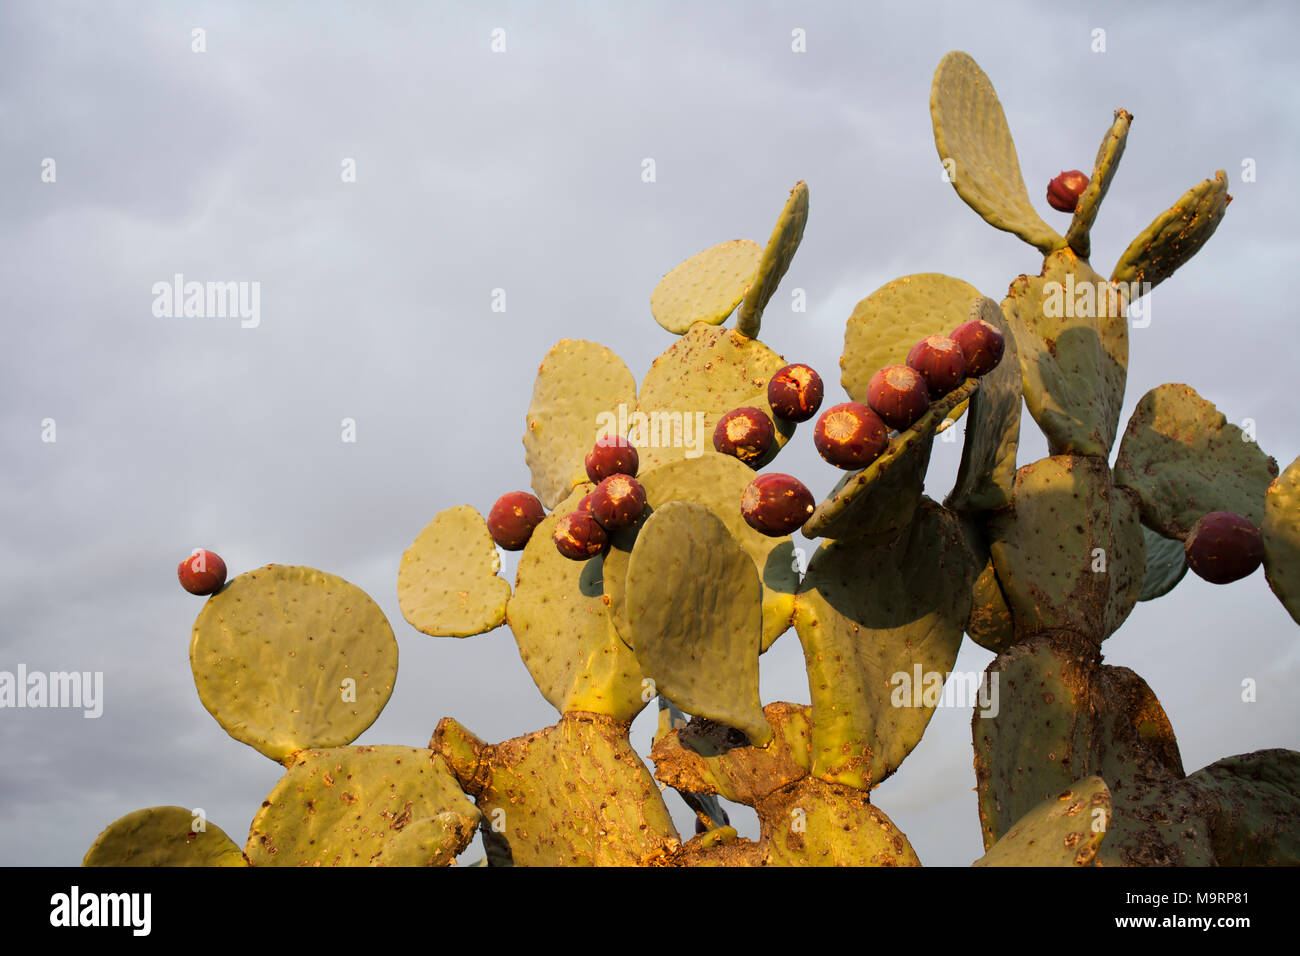 The modified stems or cladodes of the prickly pear plant (Opuntia sp.) with several ripe berries. - Stock Image